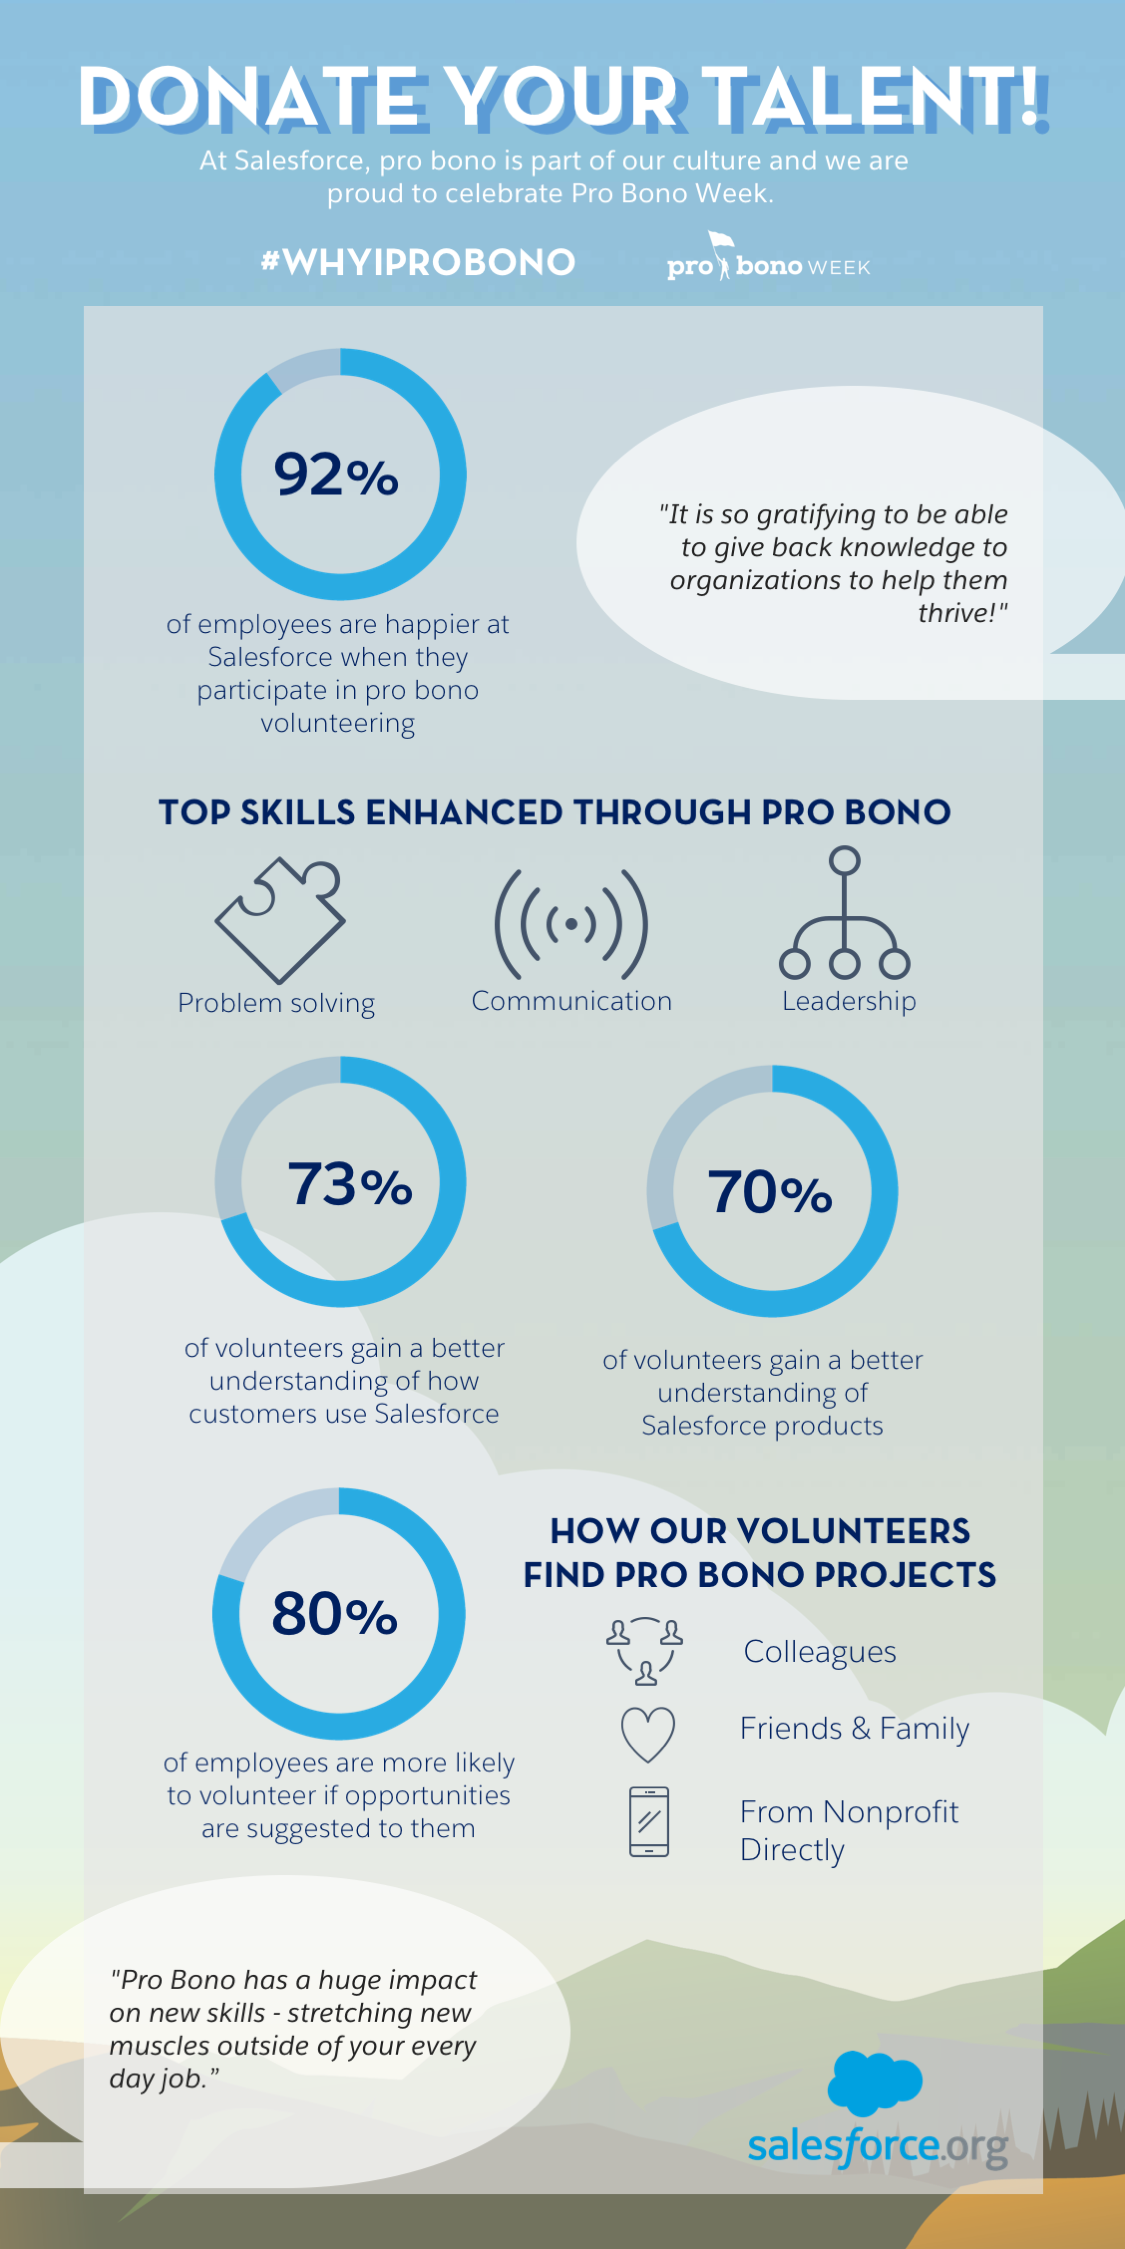 See Why Salesforce Goes All In on Pro Bono